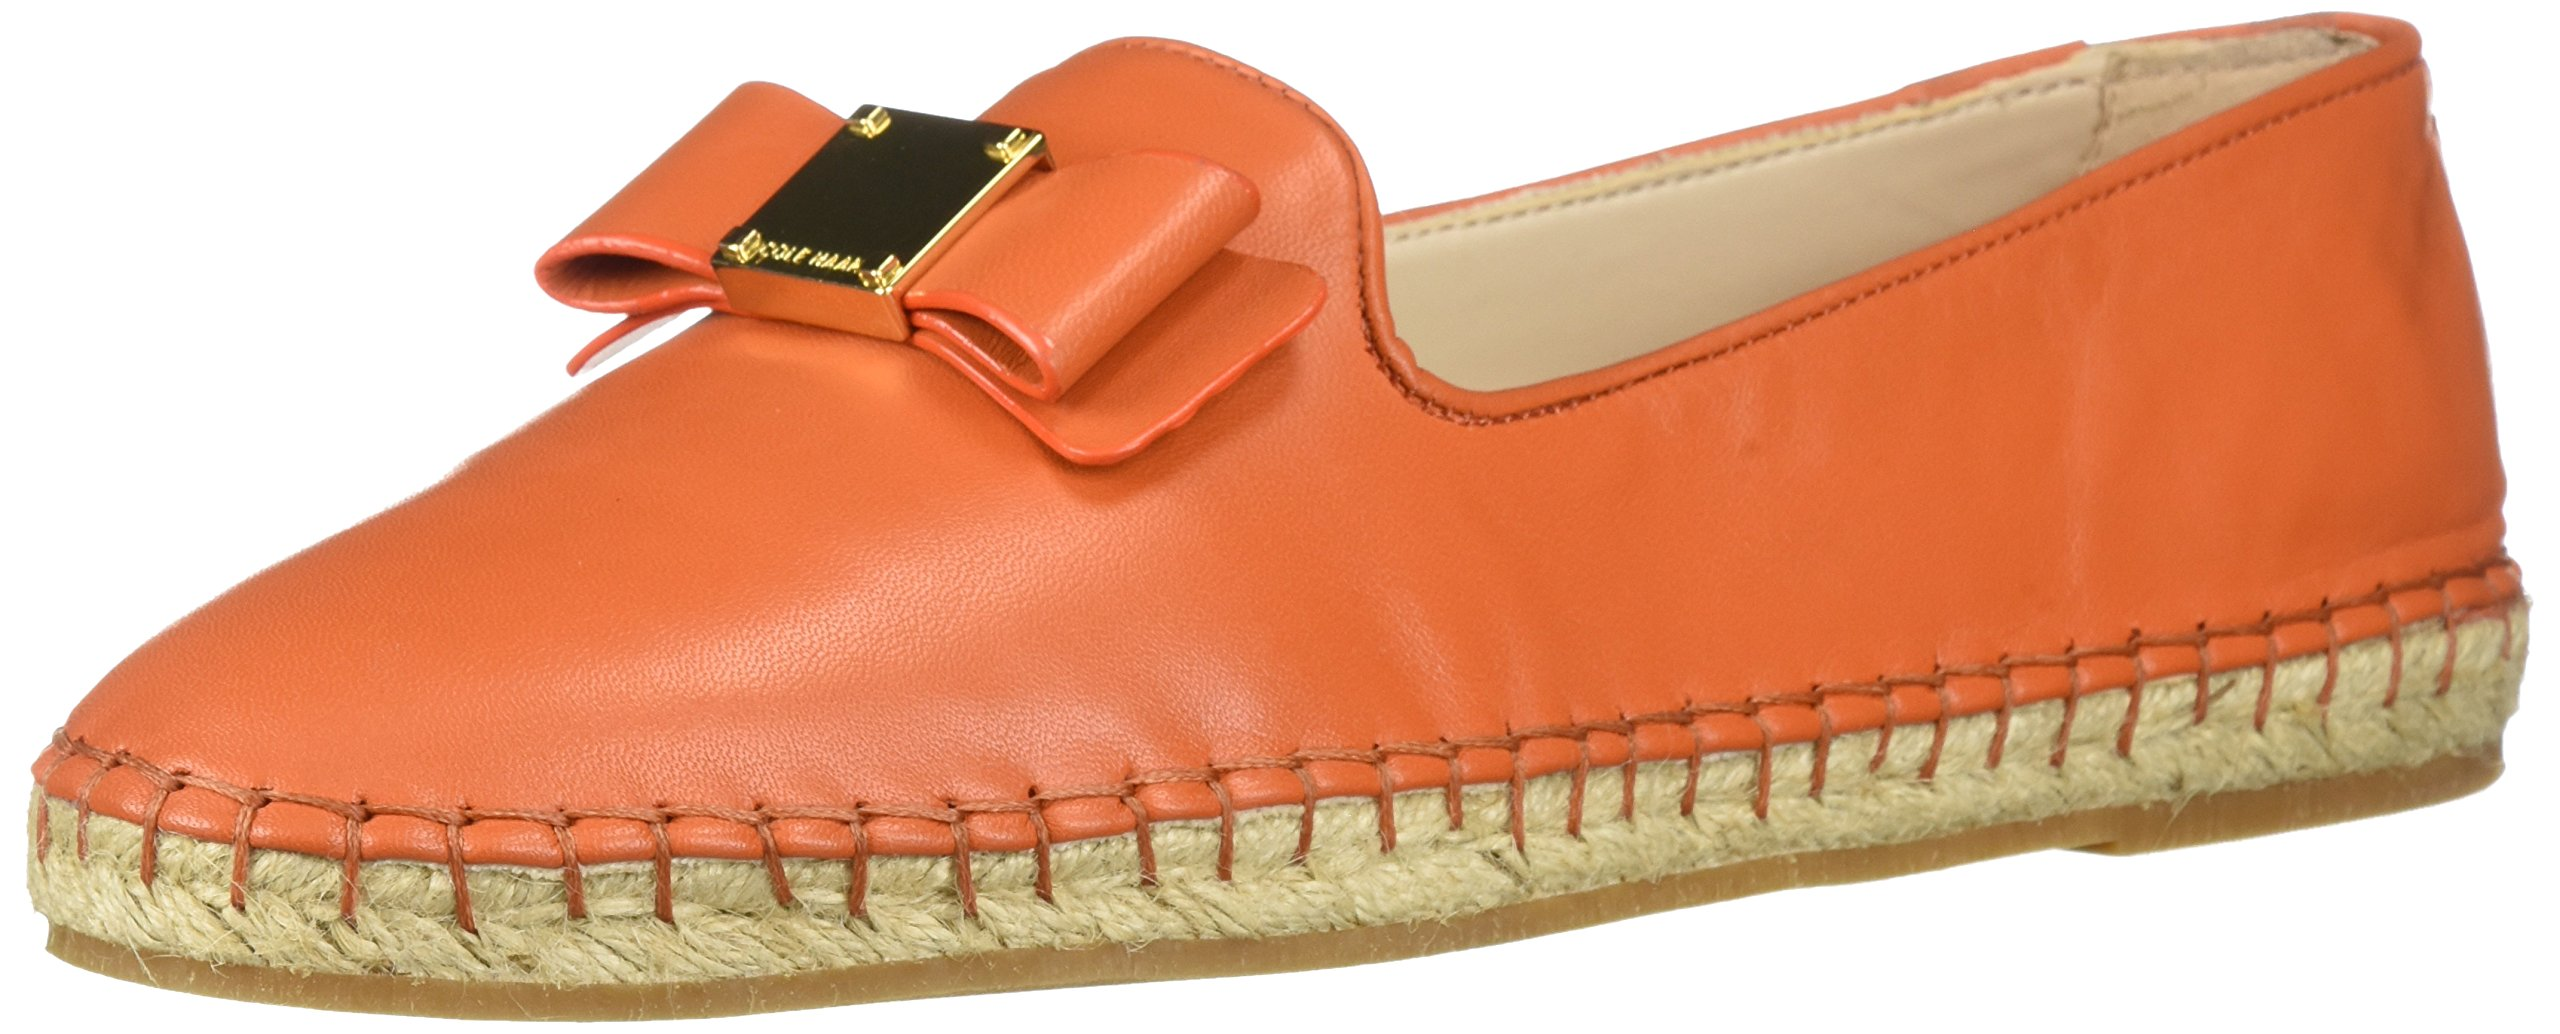 Cole Haan Women's Tali Bow Espadrille Loafer, Koi Leather, 8.5 B US